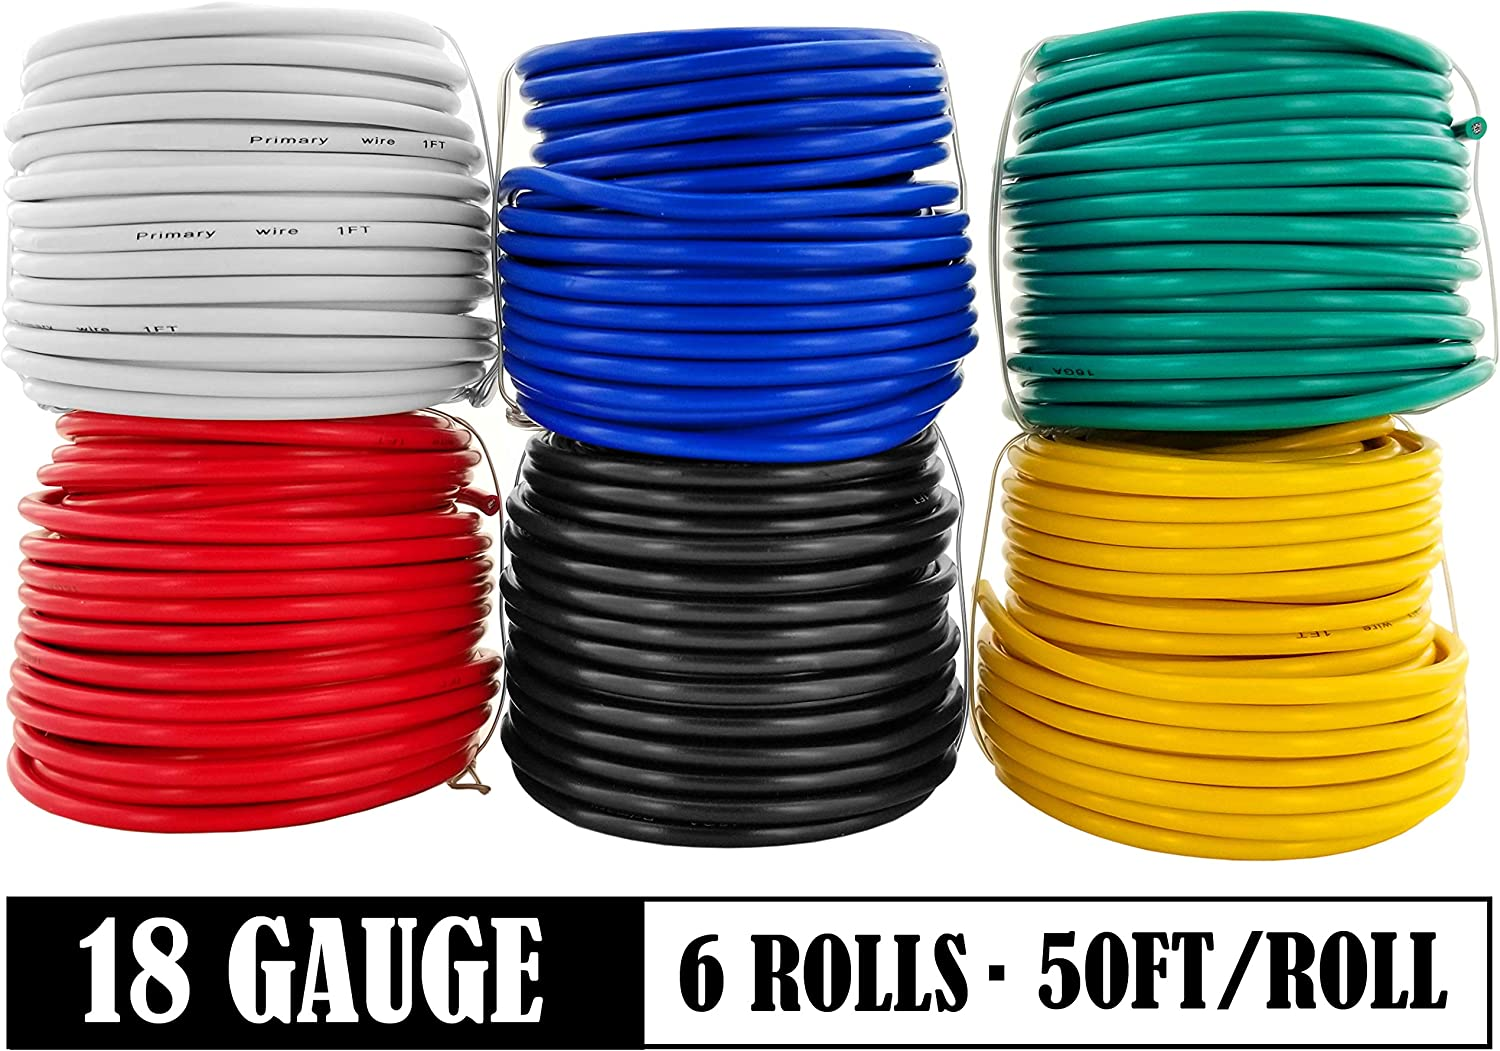 GS Power 14 Gauge Stranded Copper Clad Aluminum Primary Wire Assortment for Car Audio Amplifier Remote Automotive AV Dash Harness Hookup Wiring 10 Color Combo in 50 feet Roll